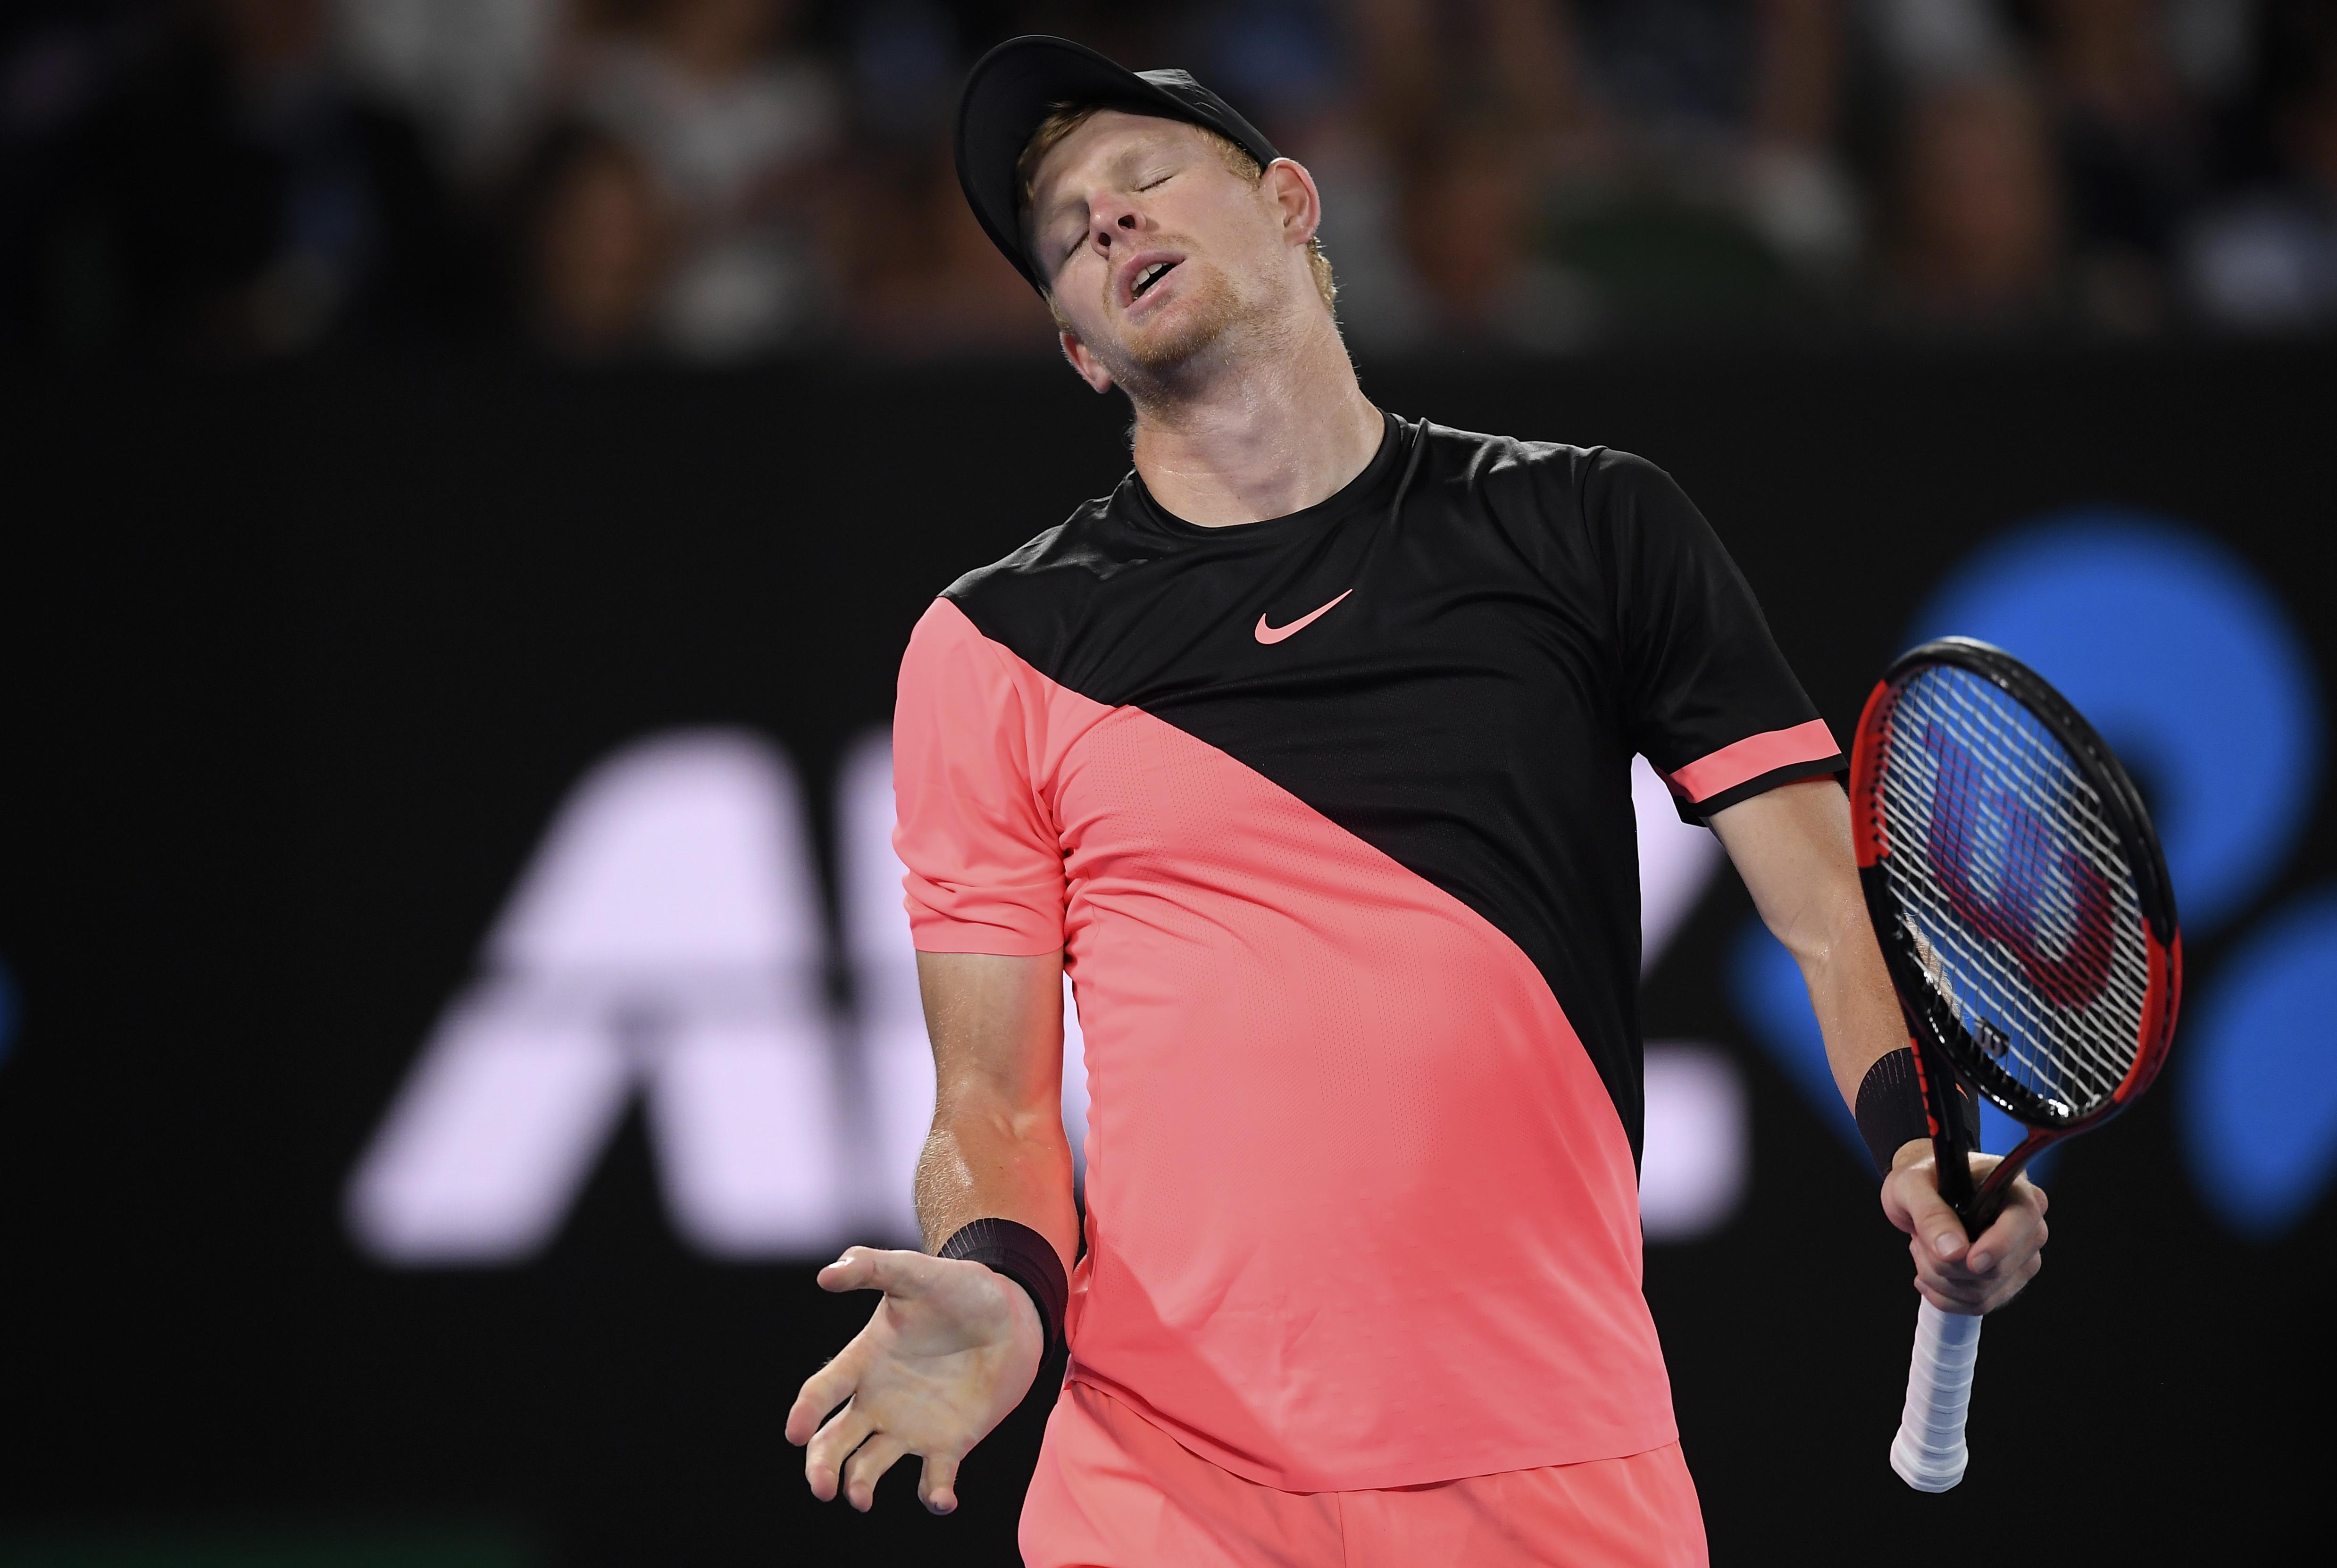 Edmund found Marin Cilic too hot to handle as he lost his Australian Open semi-final despite a battling display